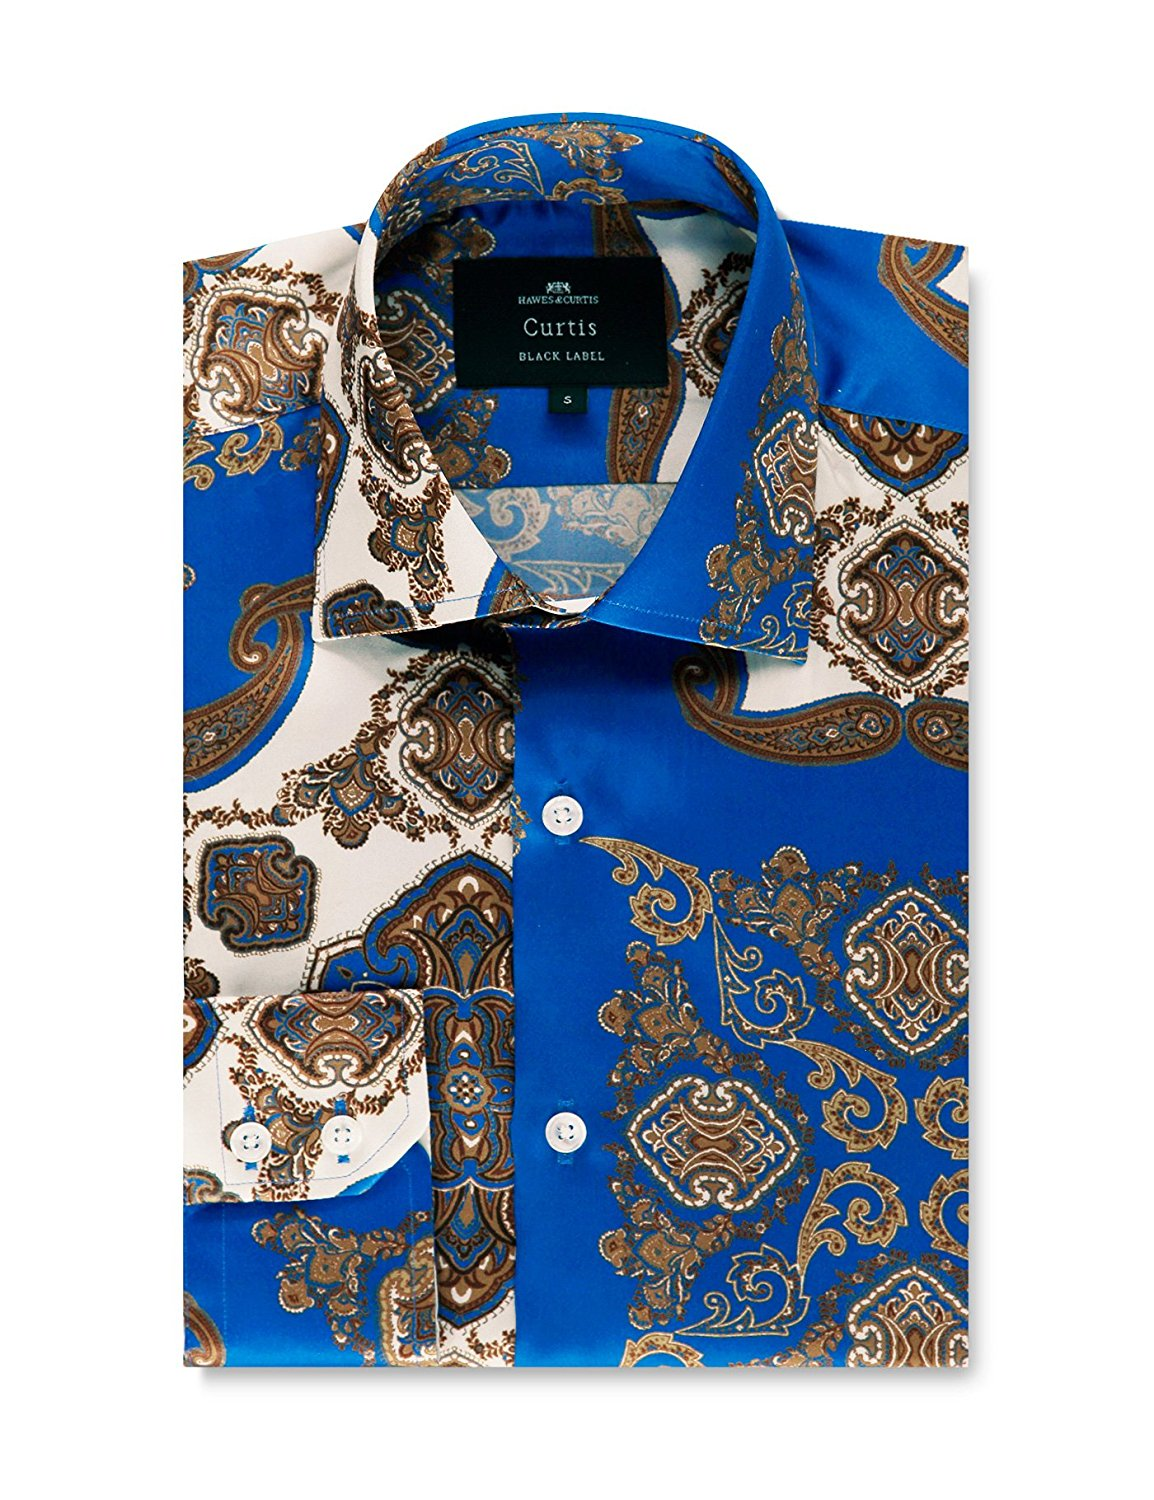 856b60baf936a Get Quotations · HAWES   CURTIS Mens Paisley Print Slim Fit Silk Shirt –  100% Silk